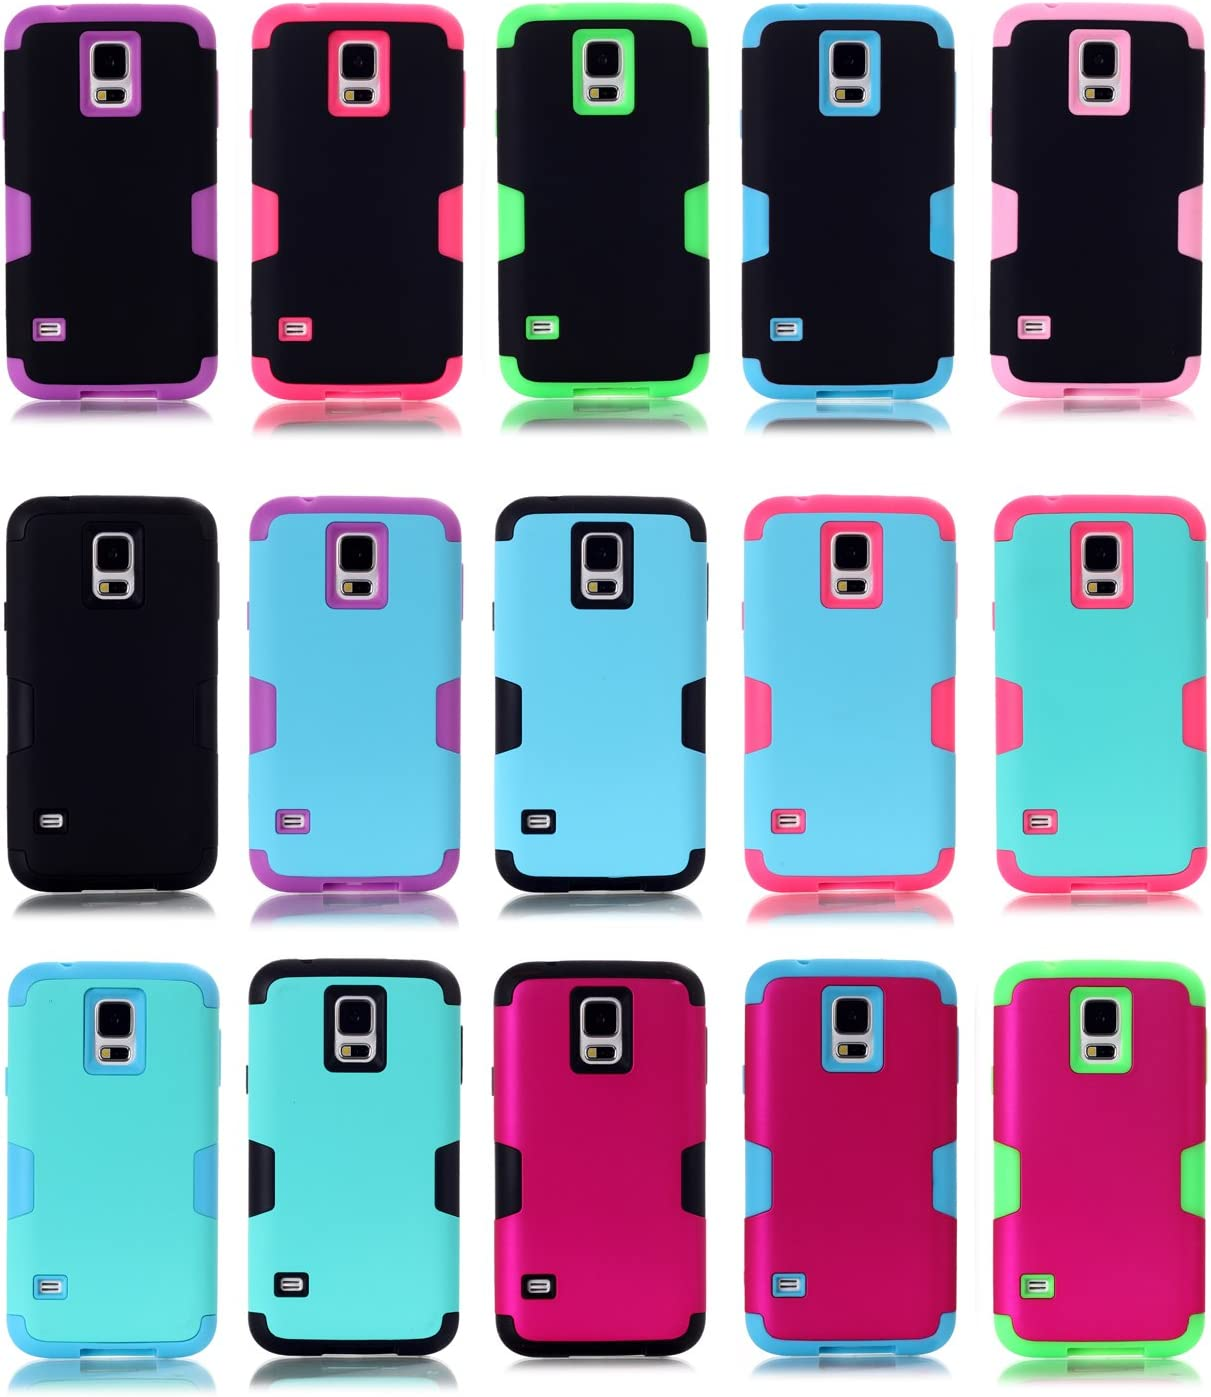 green Slim Thin Galaxy S5 Case with Kickstand Heavy Duty Armor 3 Layer Hybrid Shock Absorption Scratch Resistant TPU Skin Silicone Full-body Protective for Samsung Galaxy S5